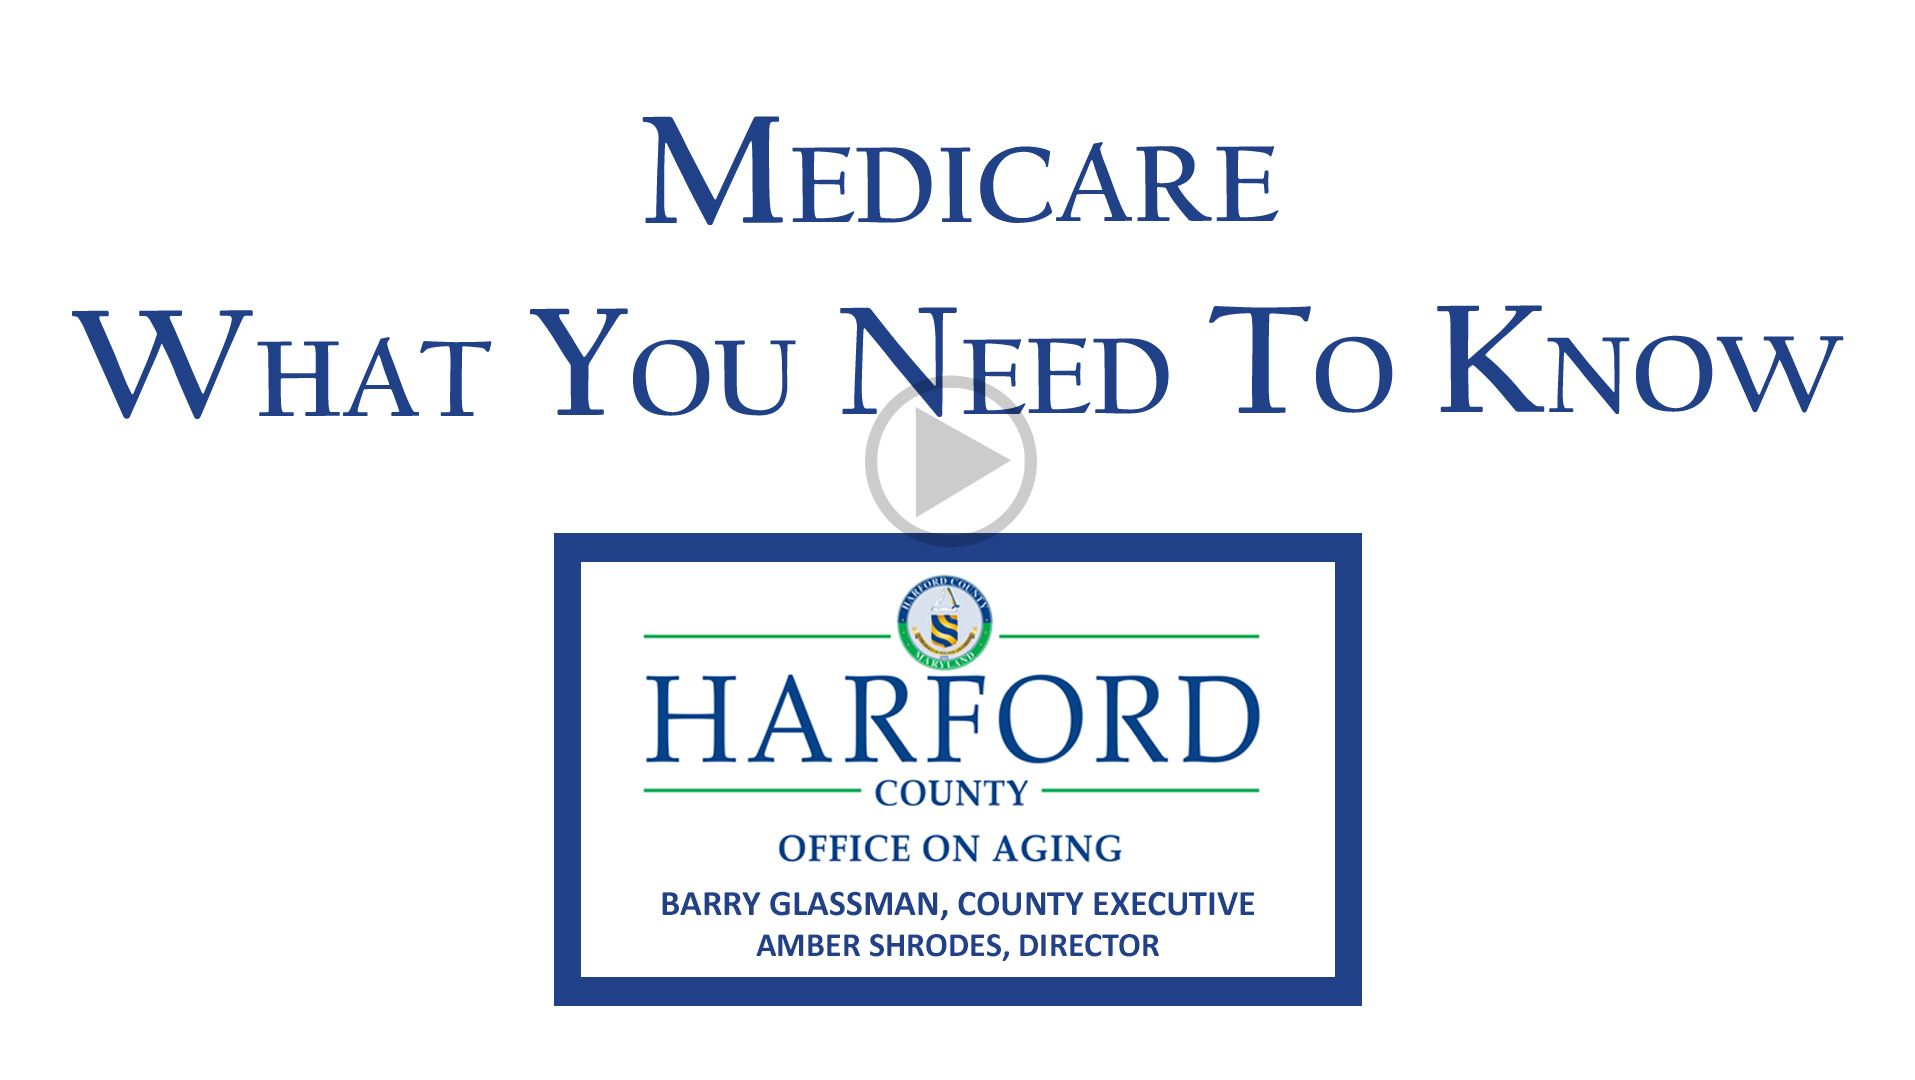 Medicare - What You Need to Know Play Video Button